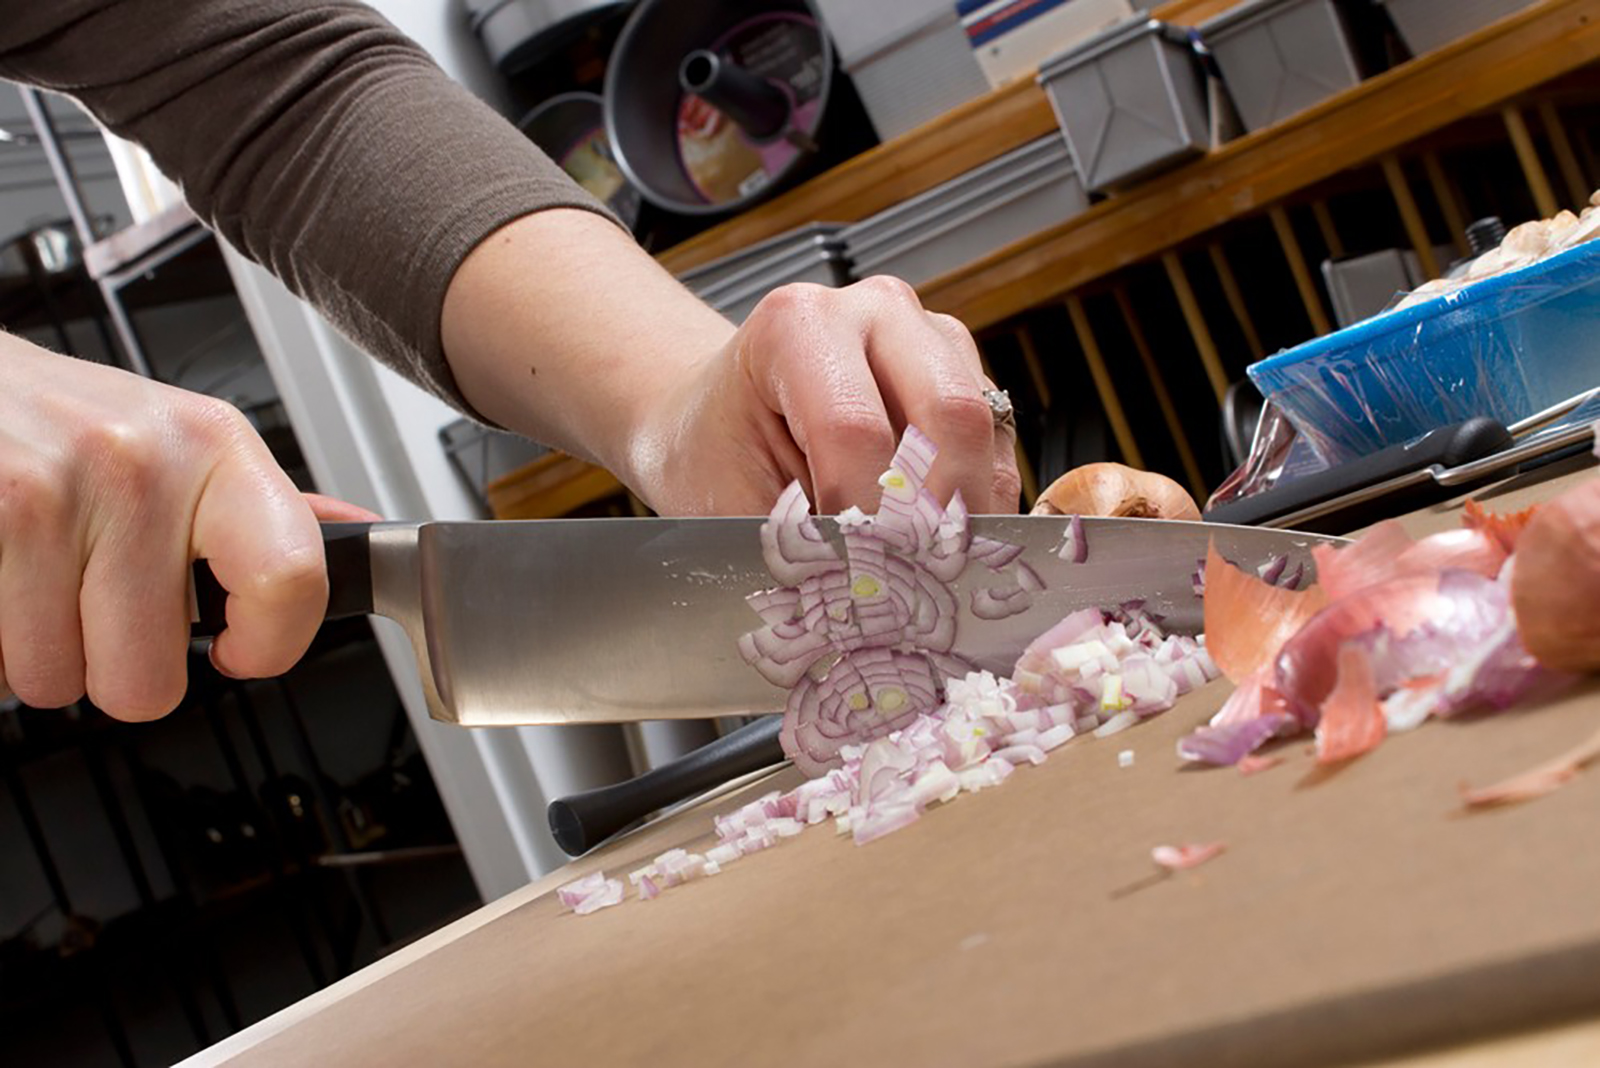 Friedr Dick Knife Cutting Shallots © Didriks - flickr.com (used under CC BY 2.0 – Unmodified)